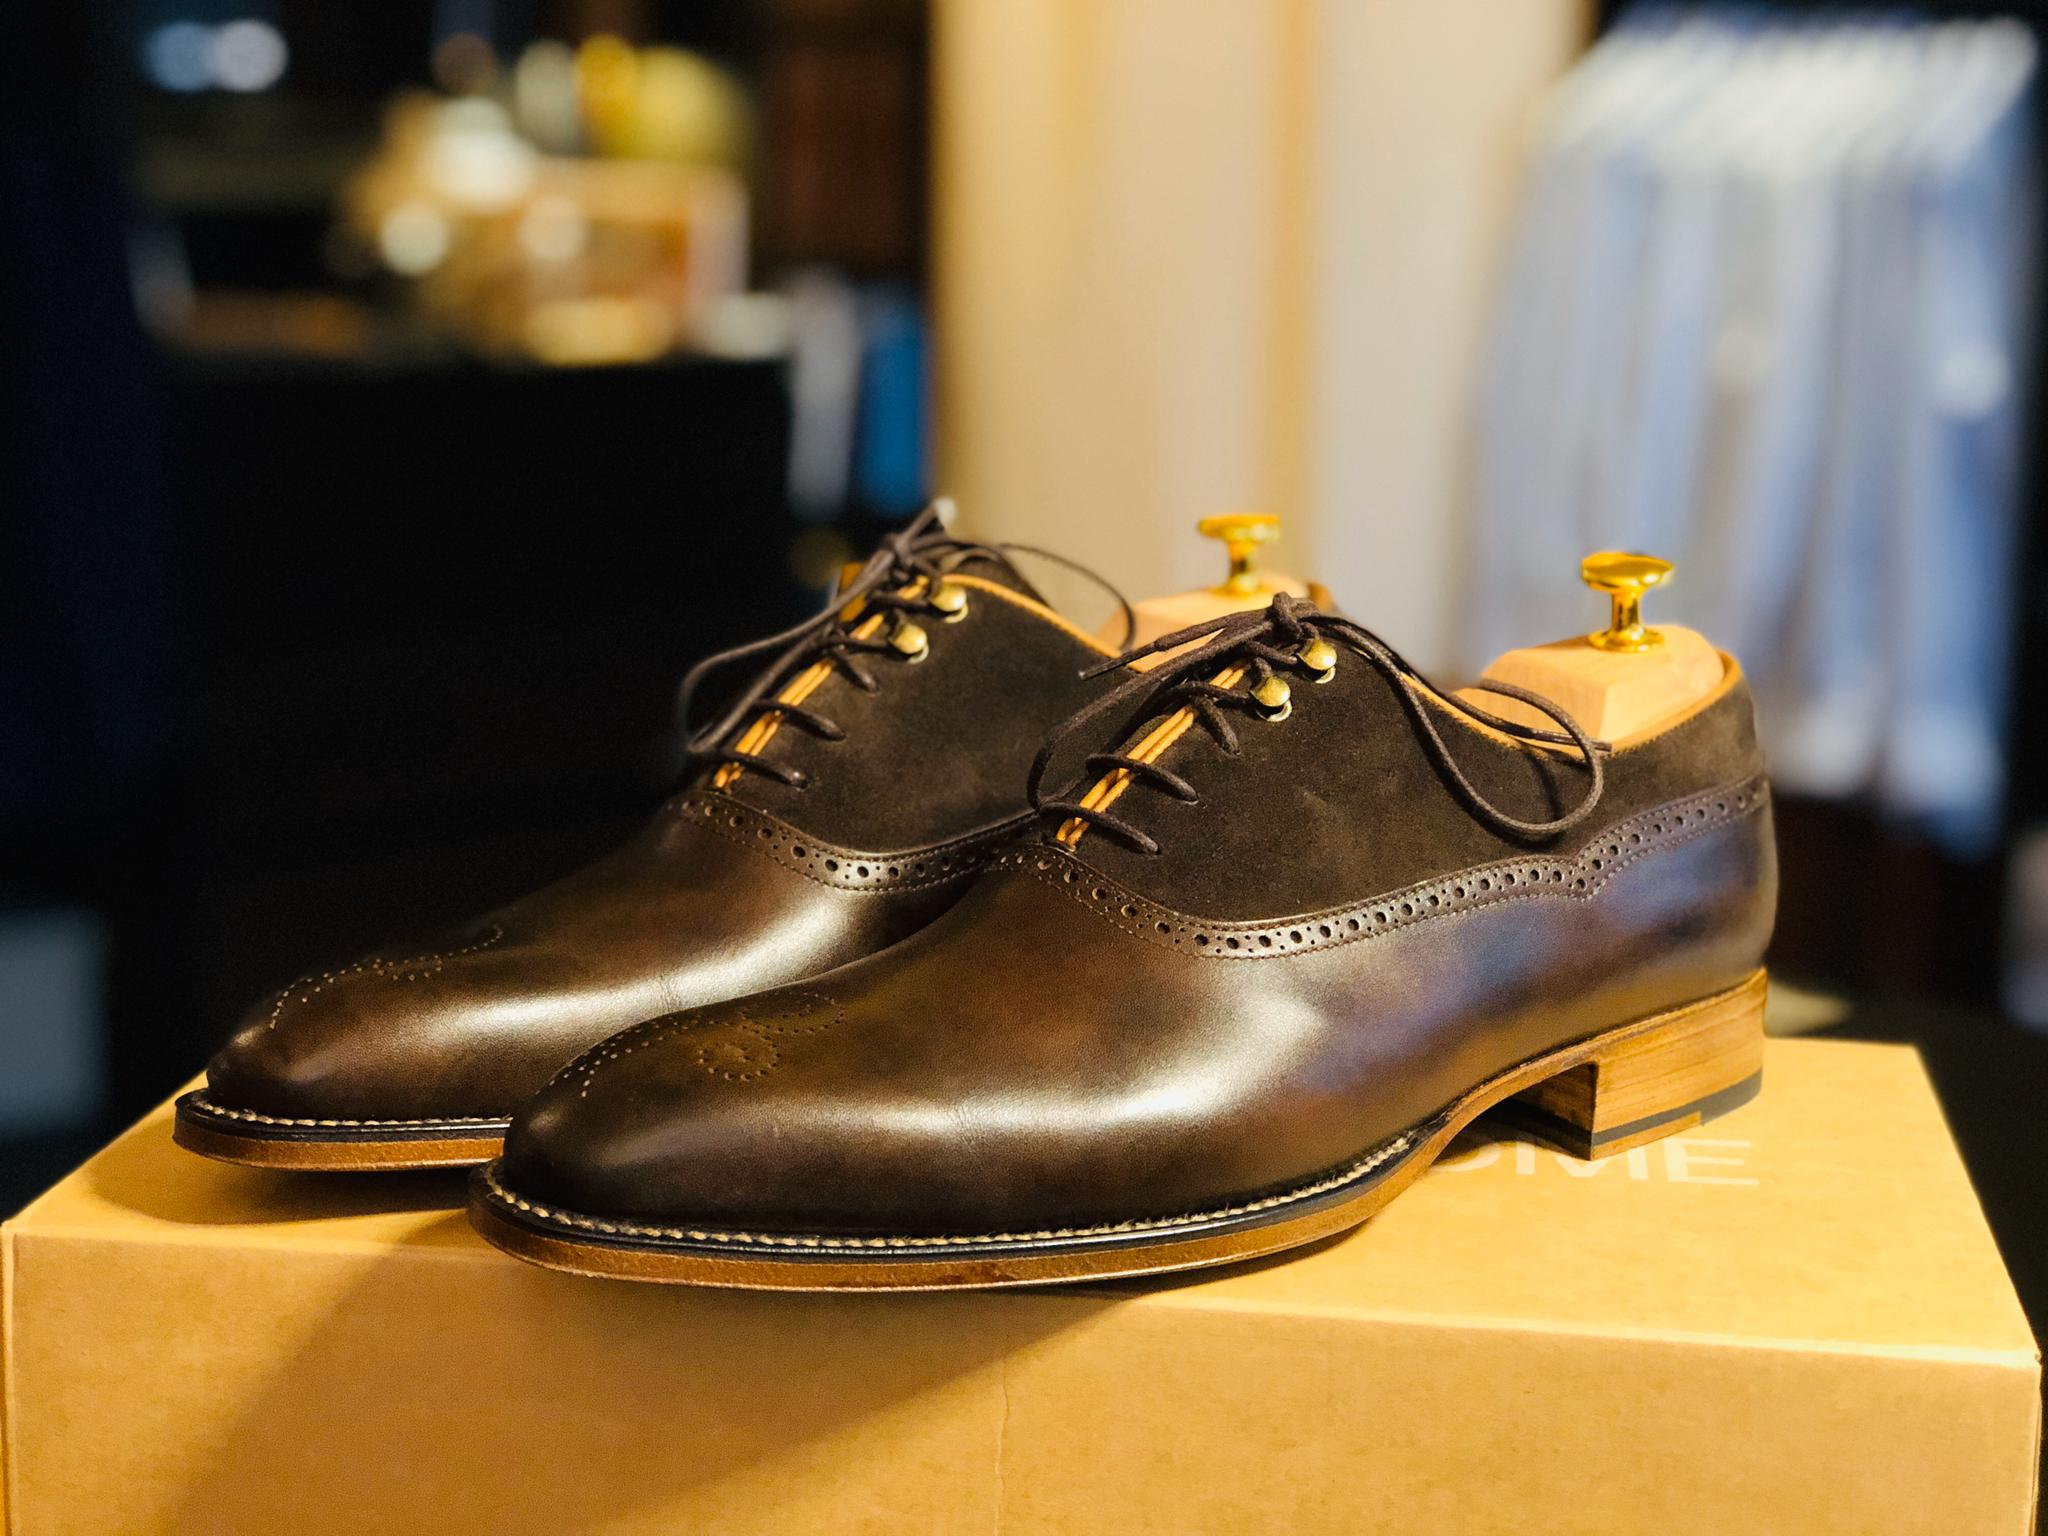 Le Majordome tailor made shoes 3